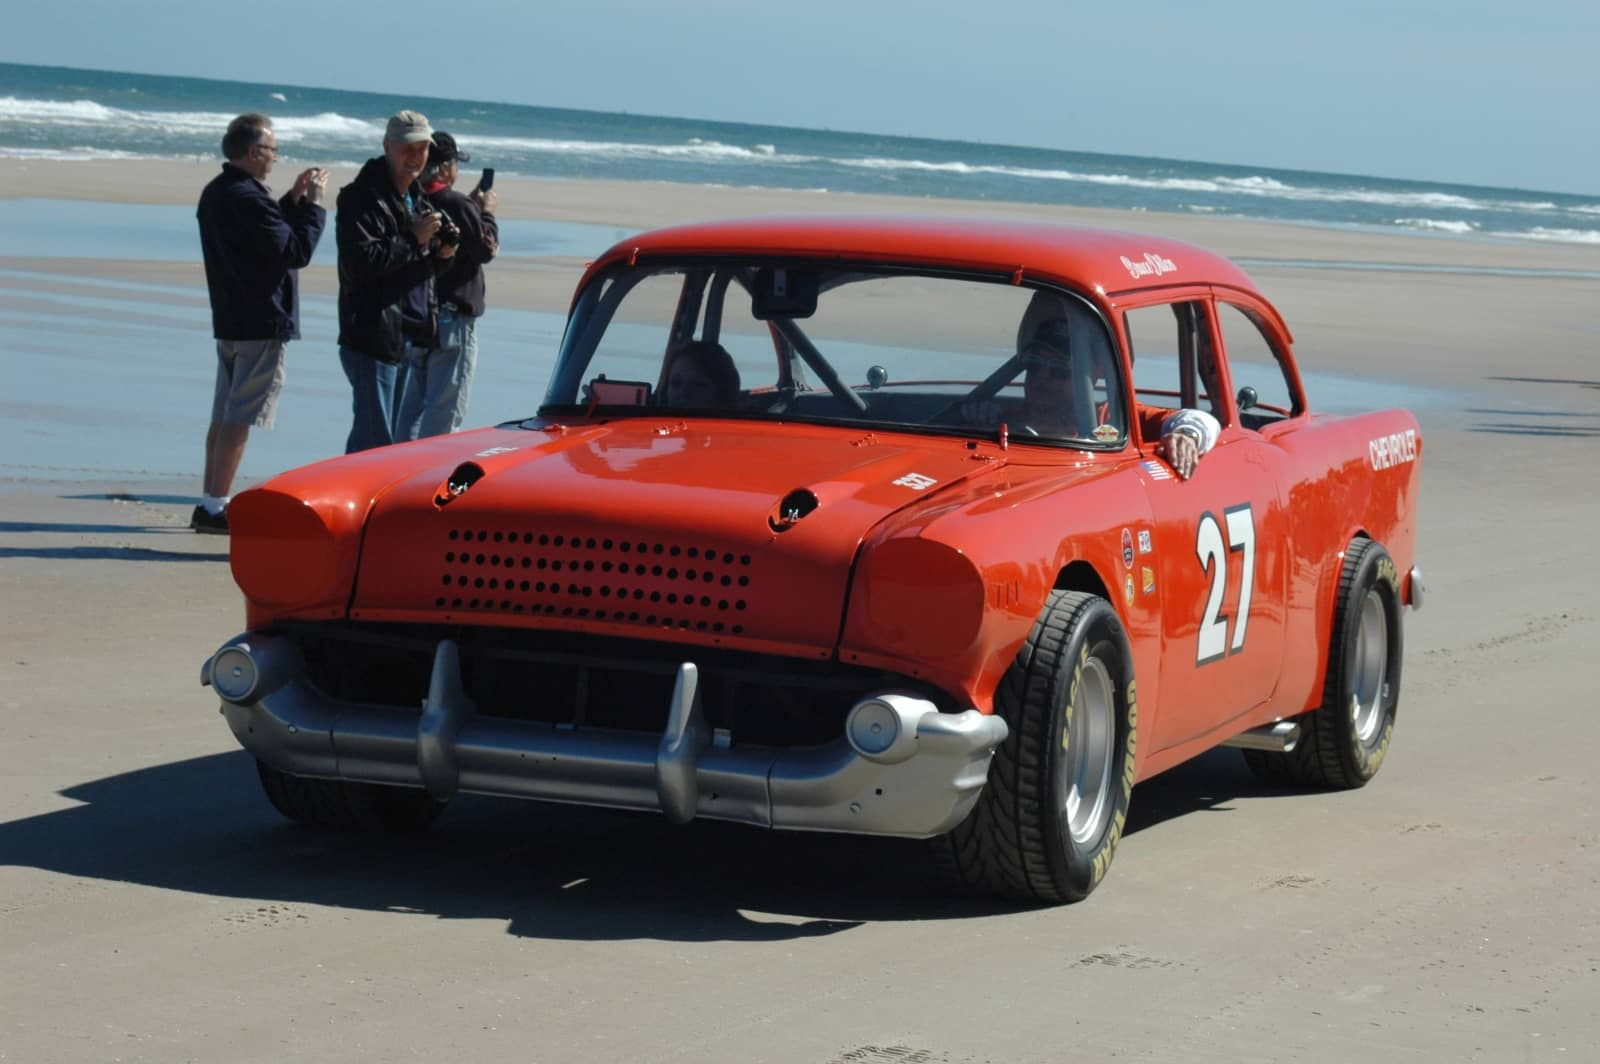 09_Chevy 1957 Stock Car